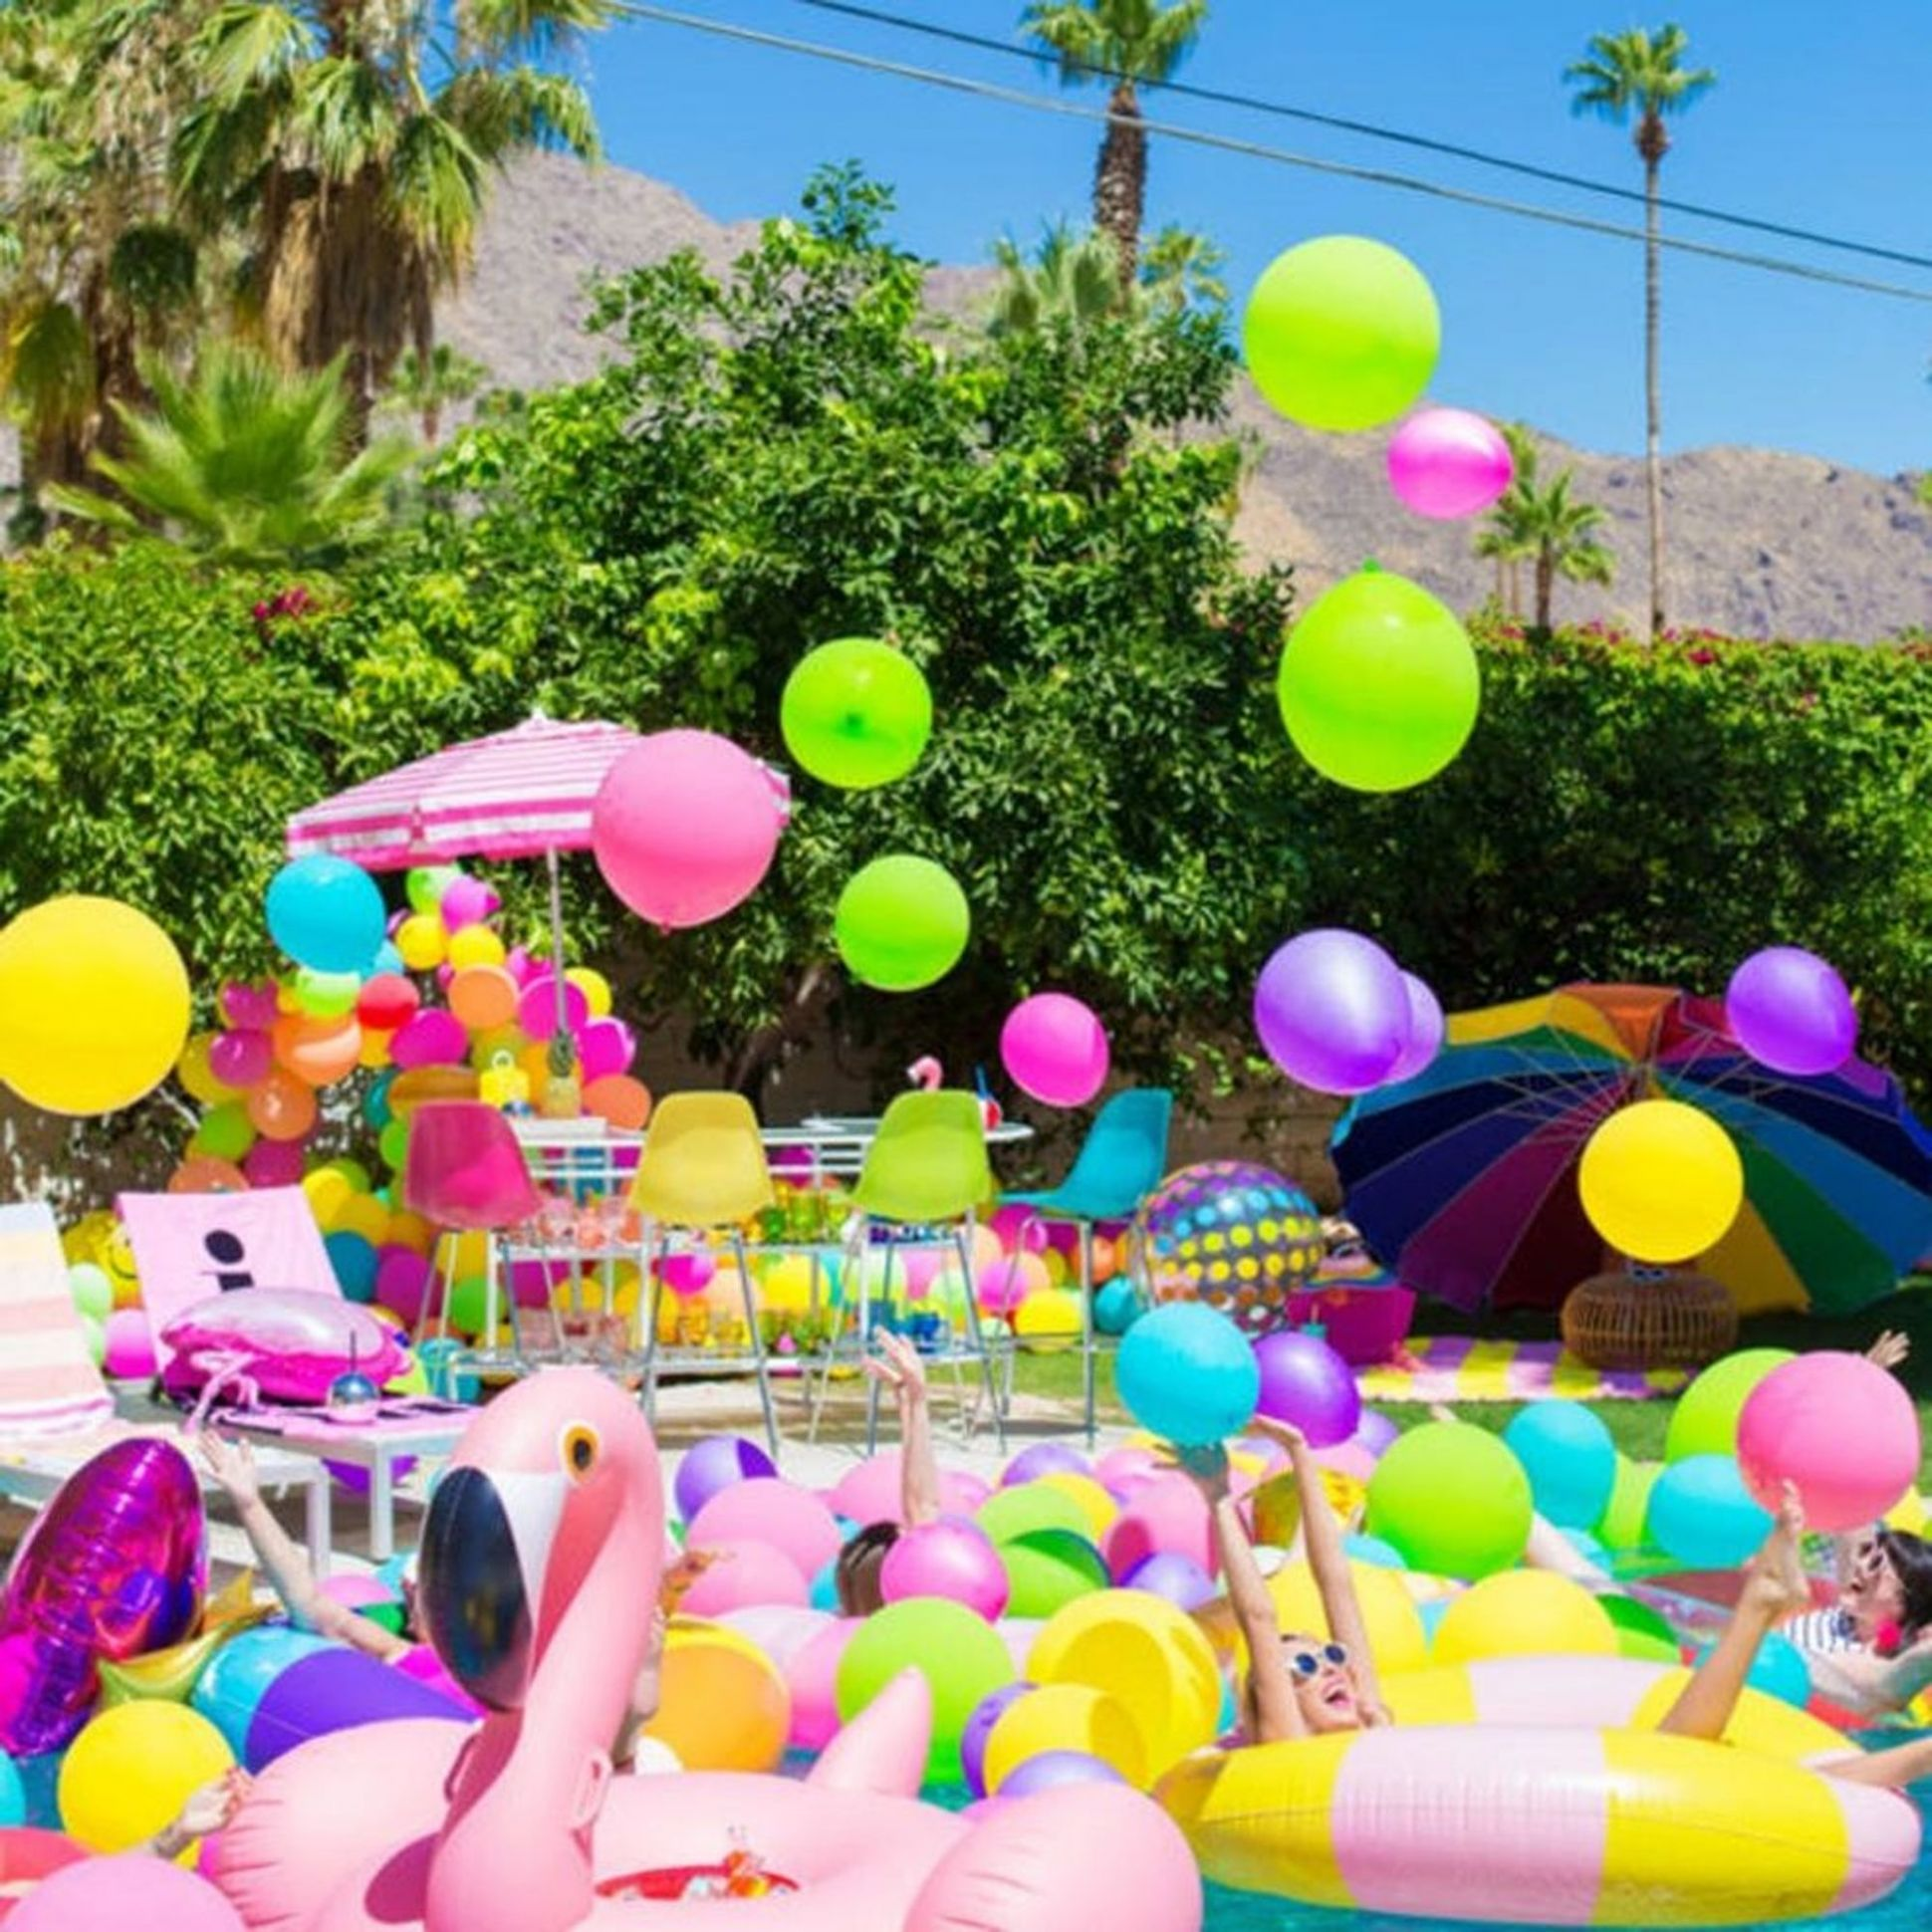 8th Birthday Pool Party Ideas That Will Make a Splash - Brit + Co - pool party ideas for adults